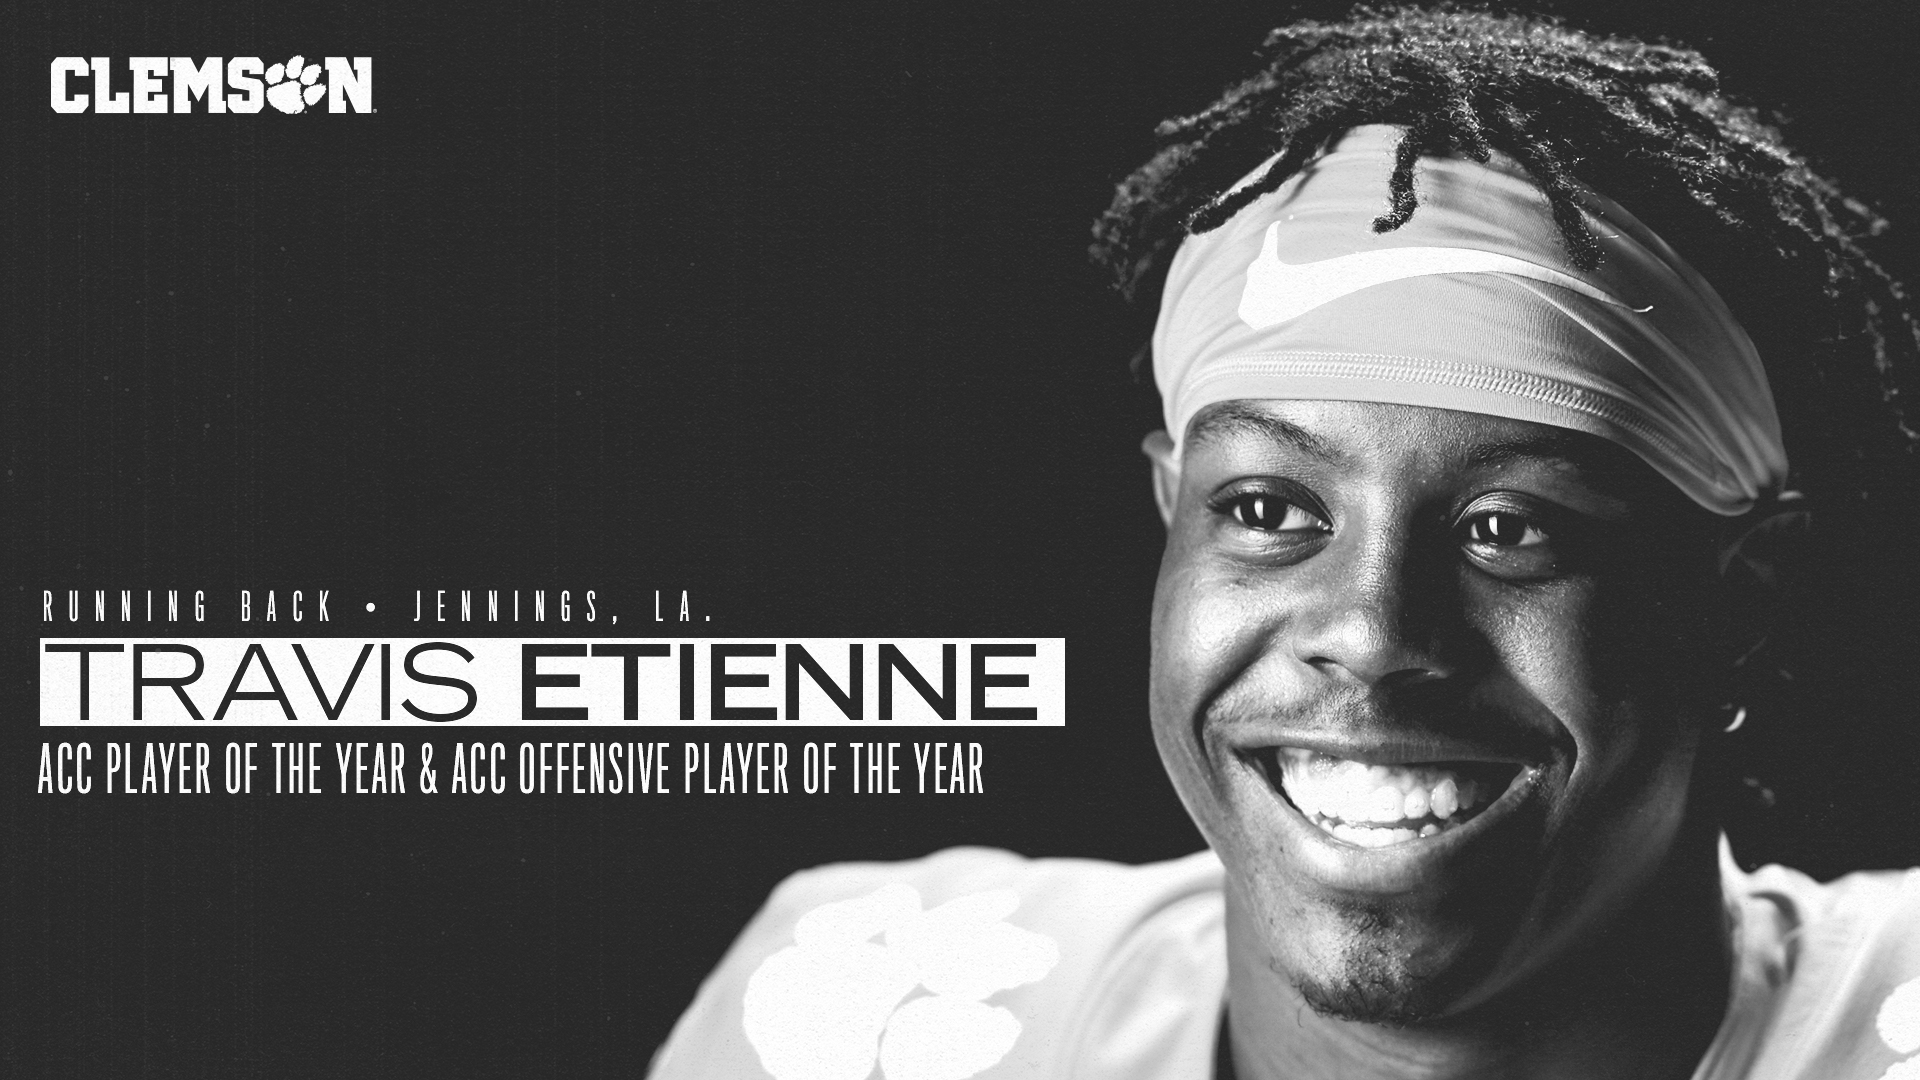 Etienne Named ACC Player of the Year